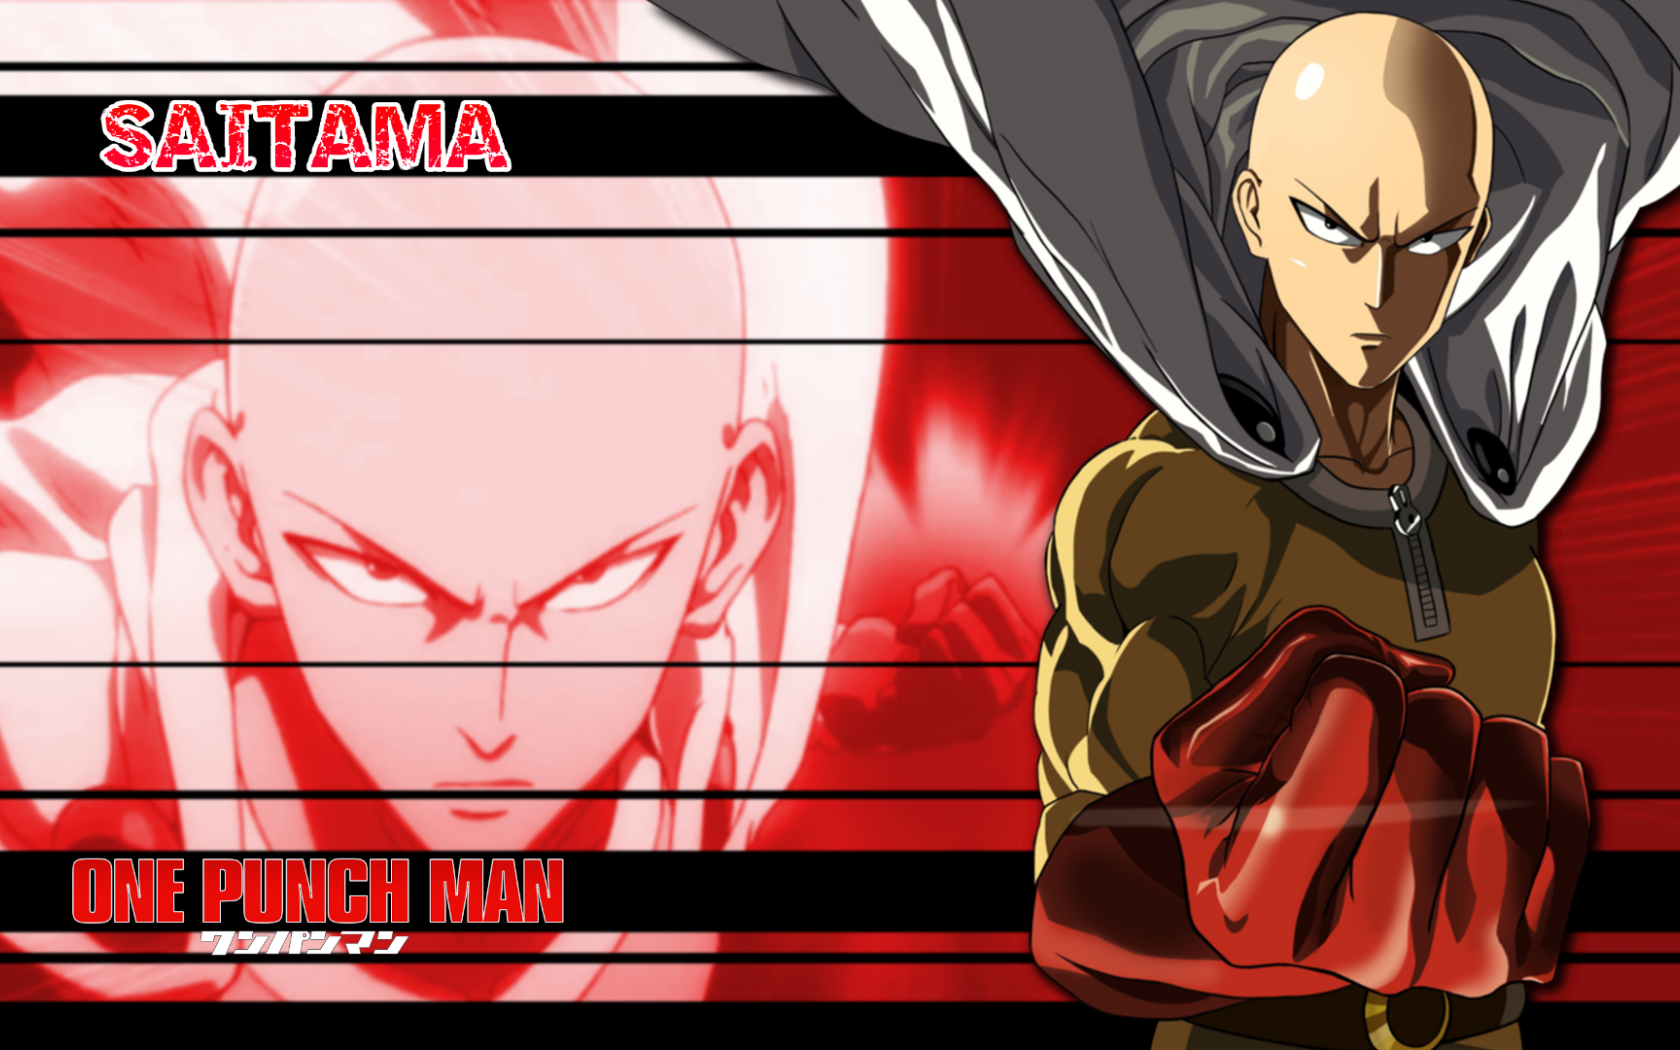 Free Download One Punch Man Saitama Wallpaper6 1920x1080 For Your Desktop Mobile Tablet Explore 48 One Punch Man Wallpaper 4k One Punch Man Desktop Wallpaper One Punch Man Wallpaper